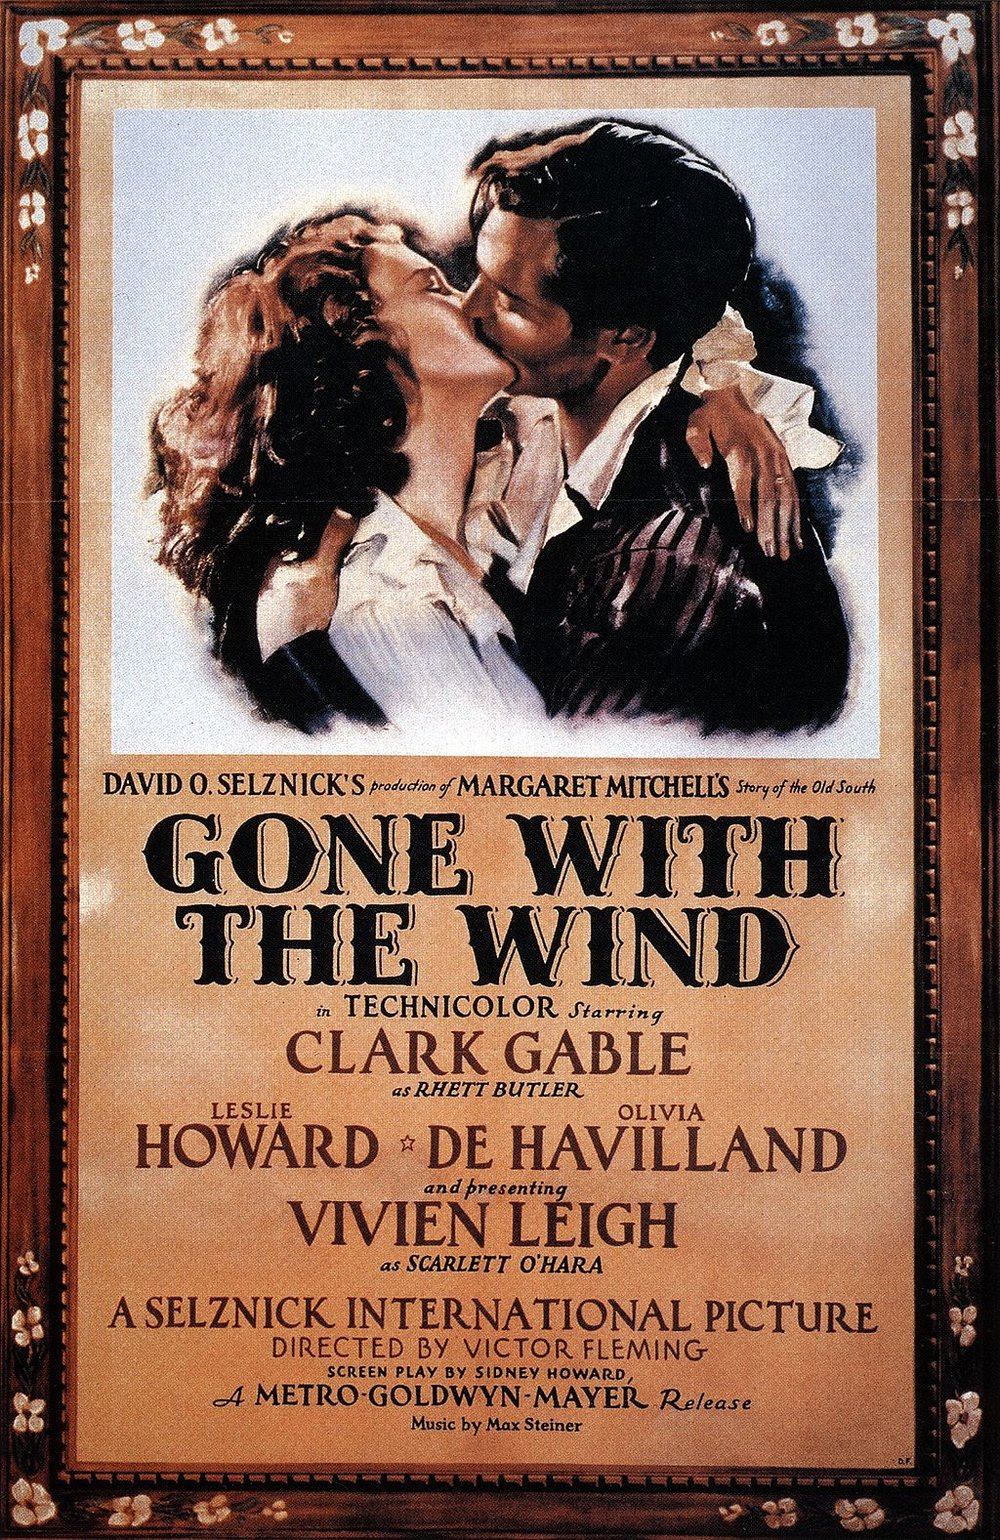 A 1939 poster for Gone with the Wind - available here.